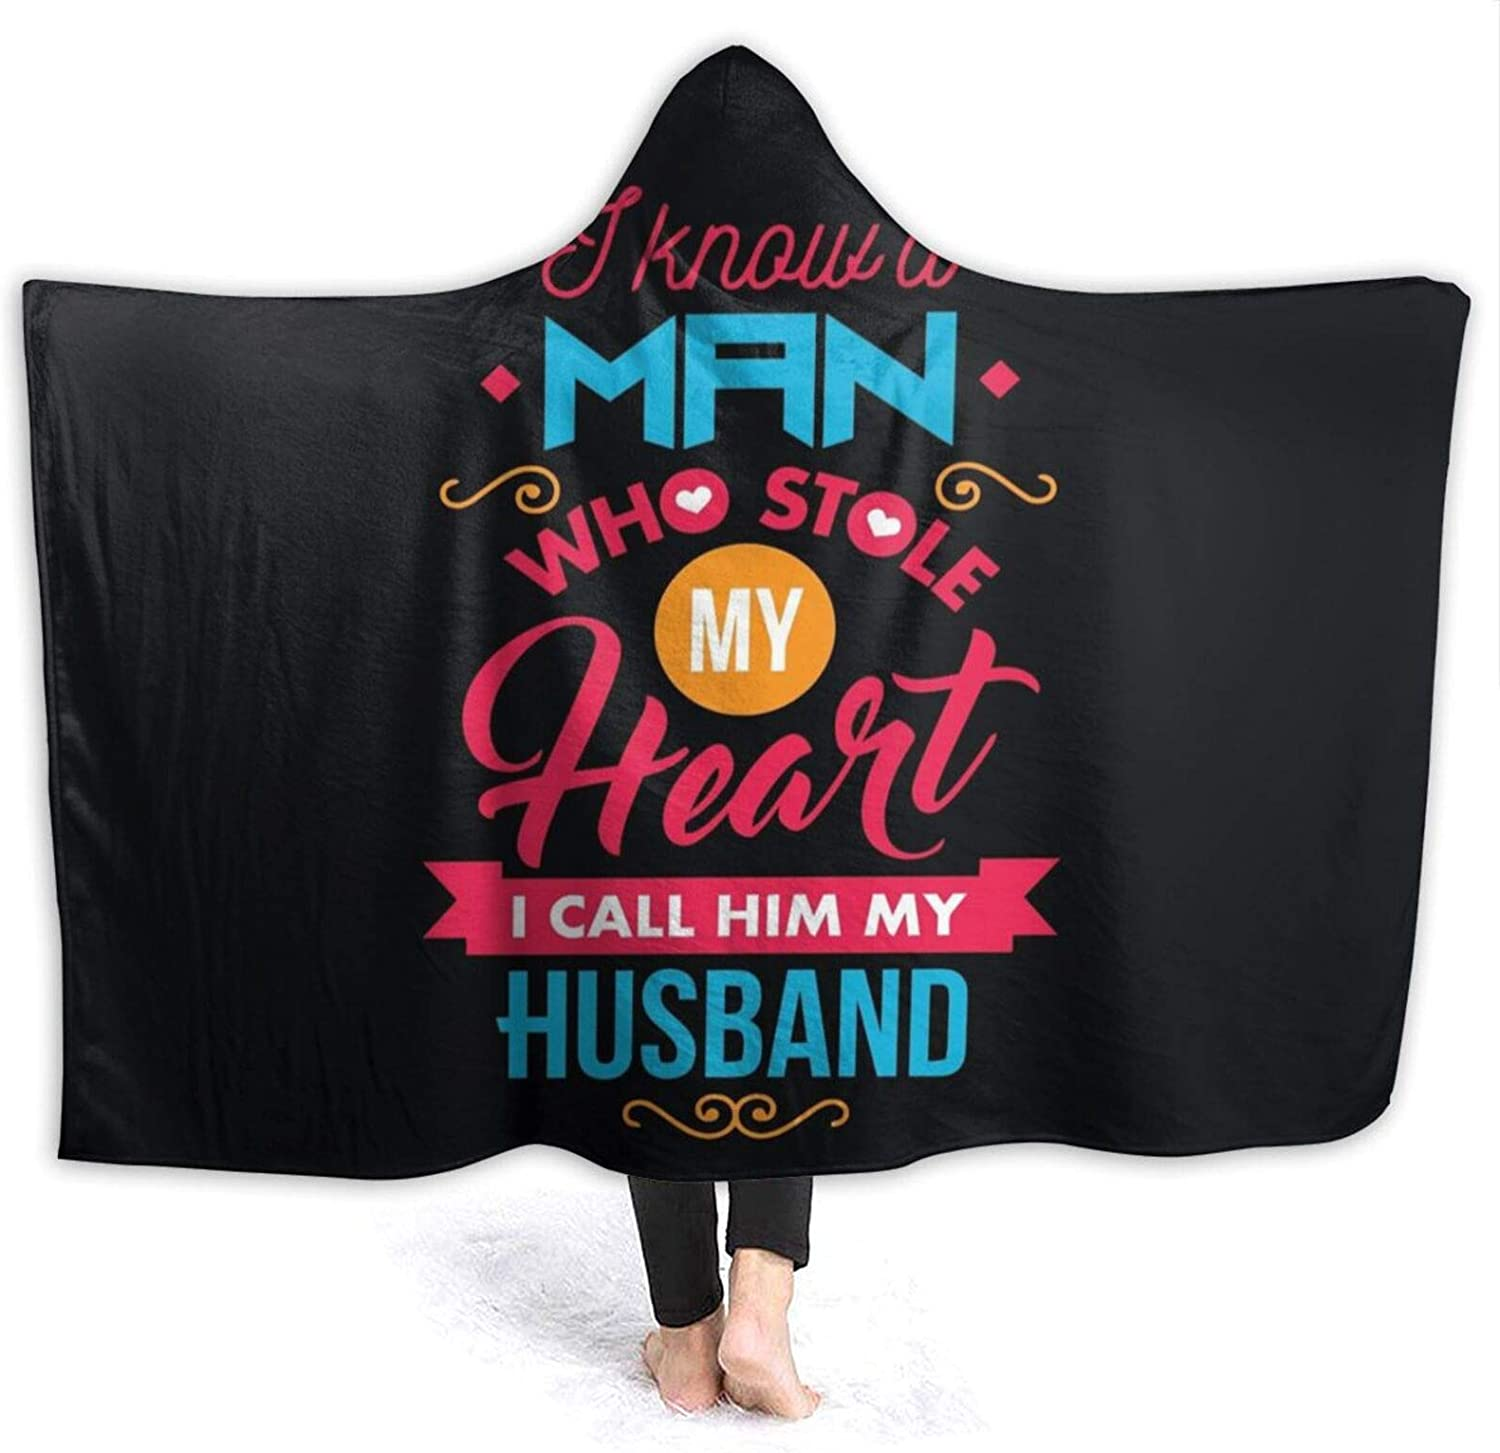 NYIVBE My Special sale item Heart I Call Him Blanket List price Hooded Super Soft Husband